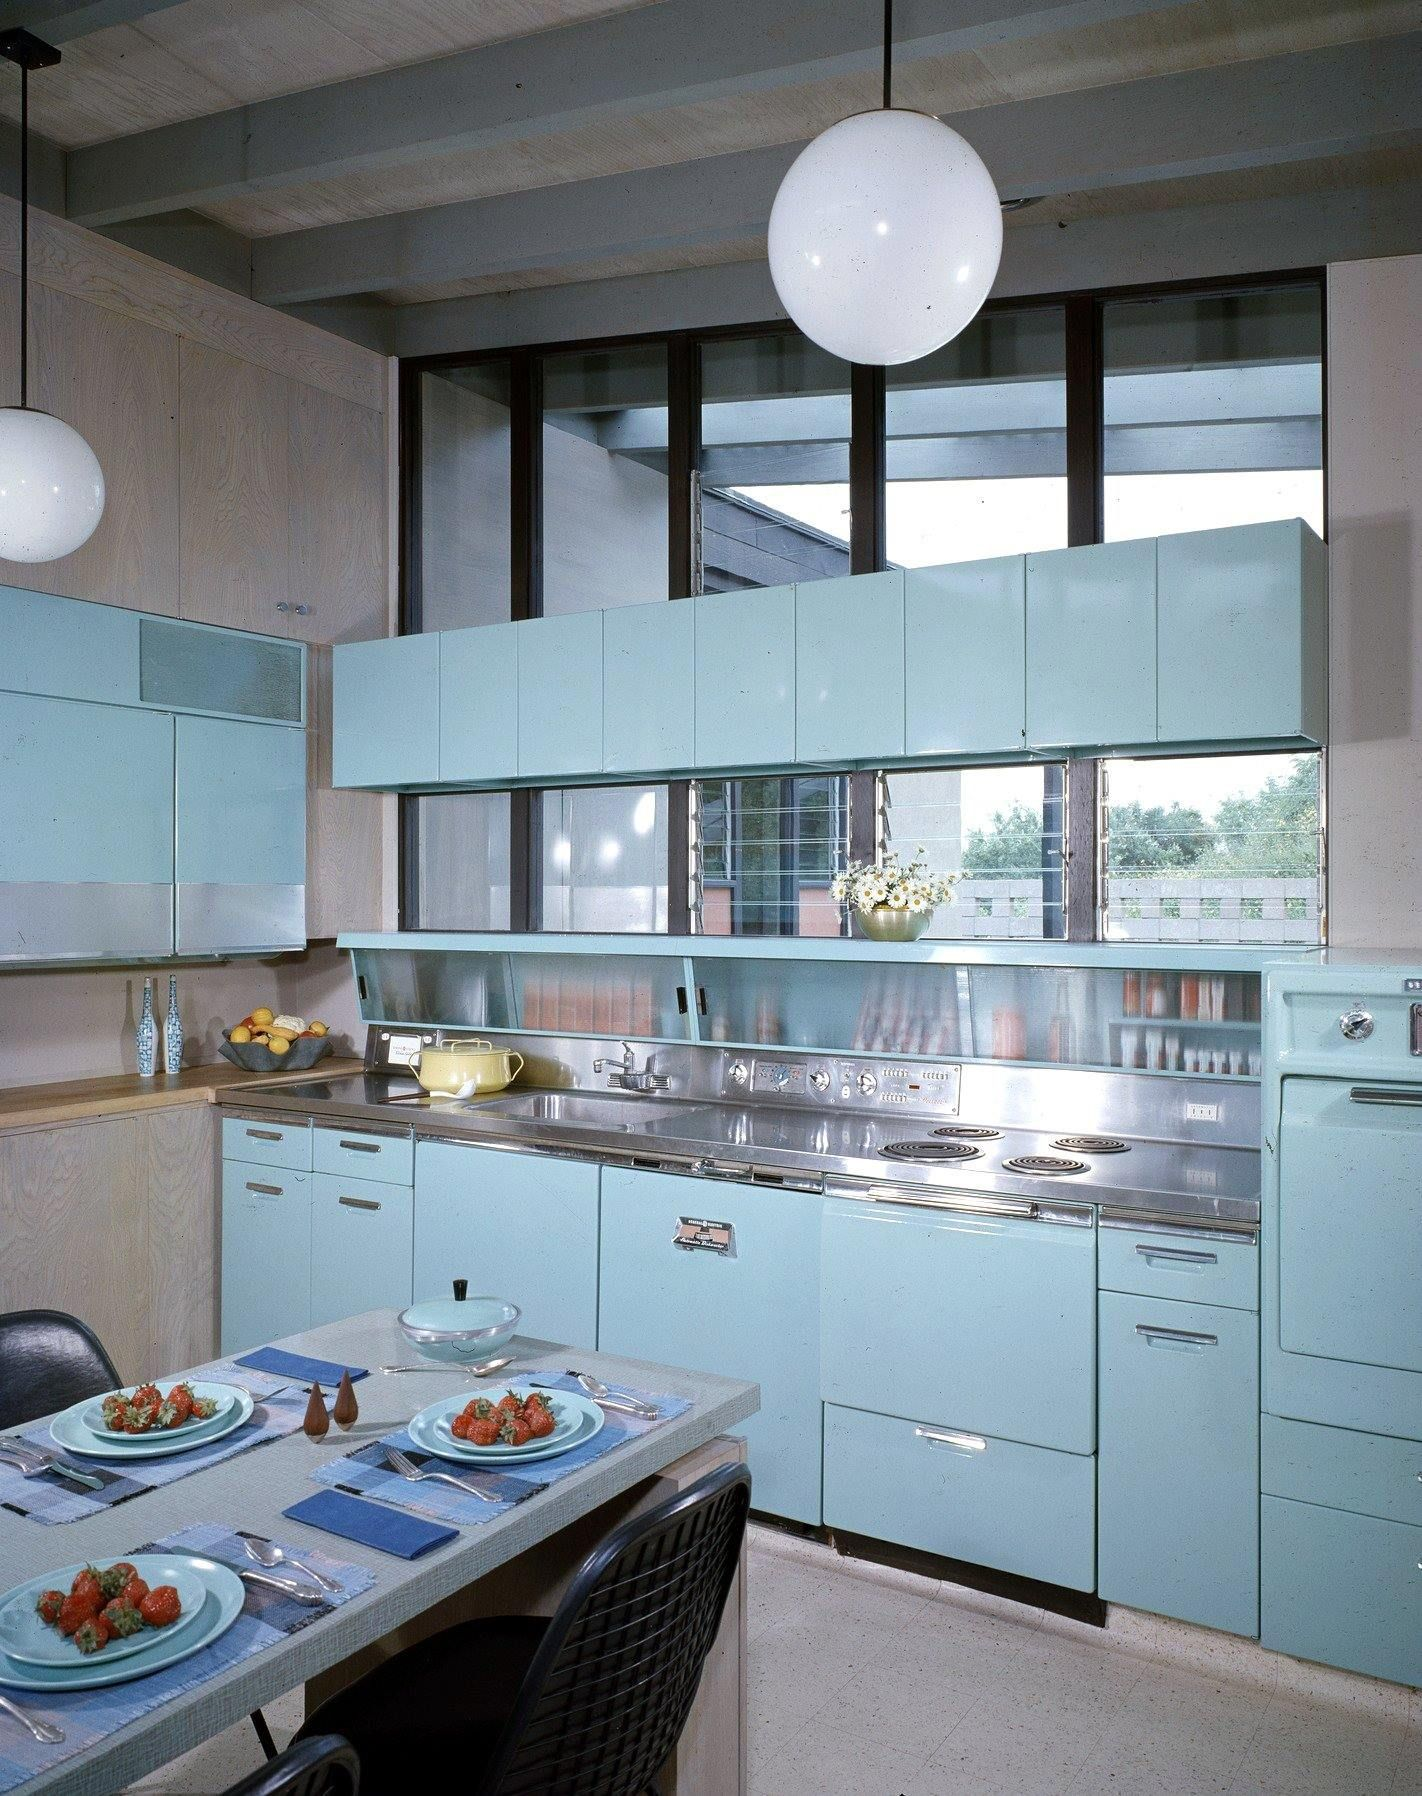 Pale blue kitchen of the Haddad House. Located in Los Angeles, California it was designed by architect David Hyun and built in 1958. Photo: Shulman / Getty.